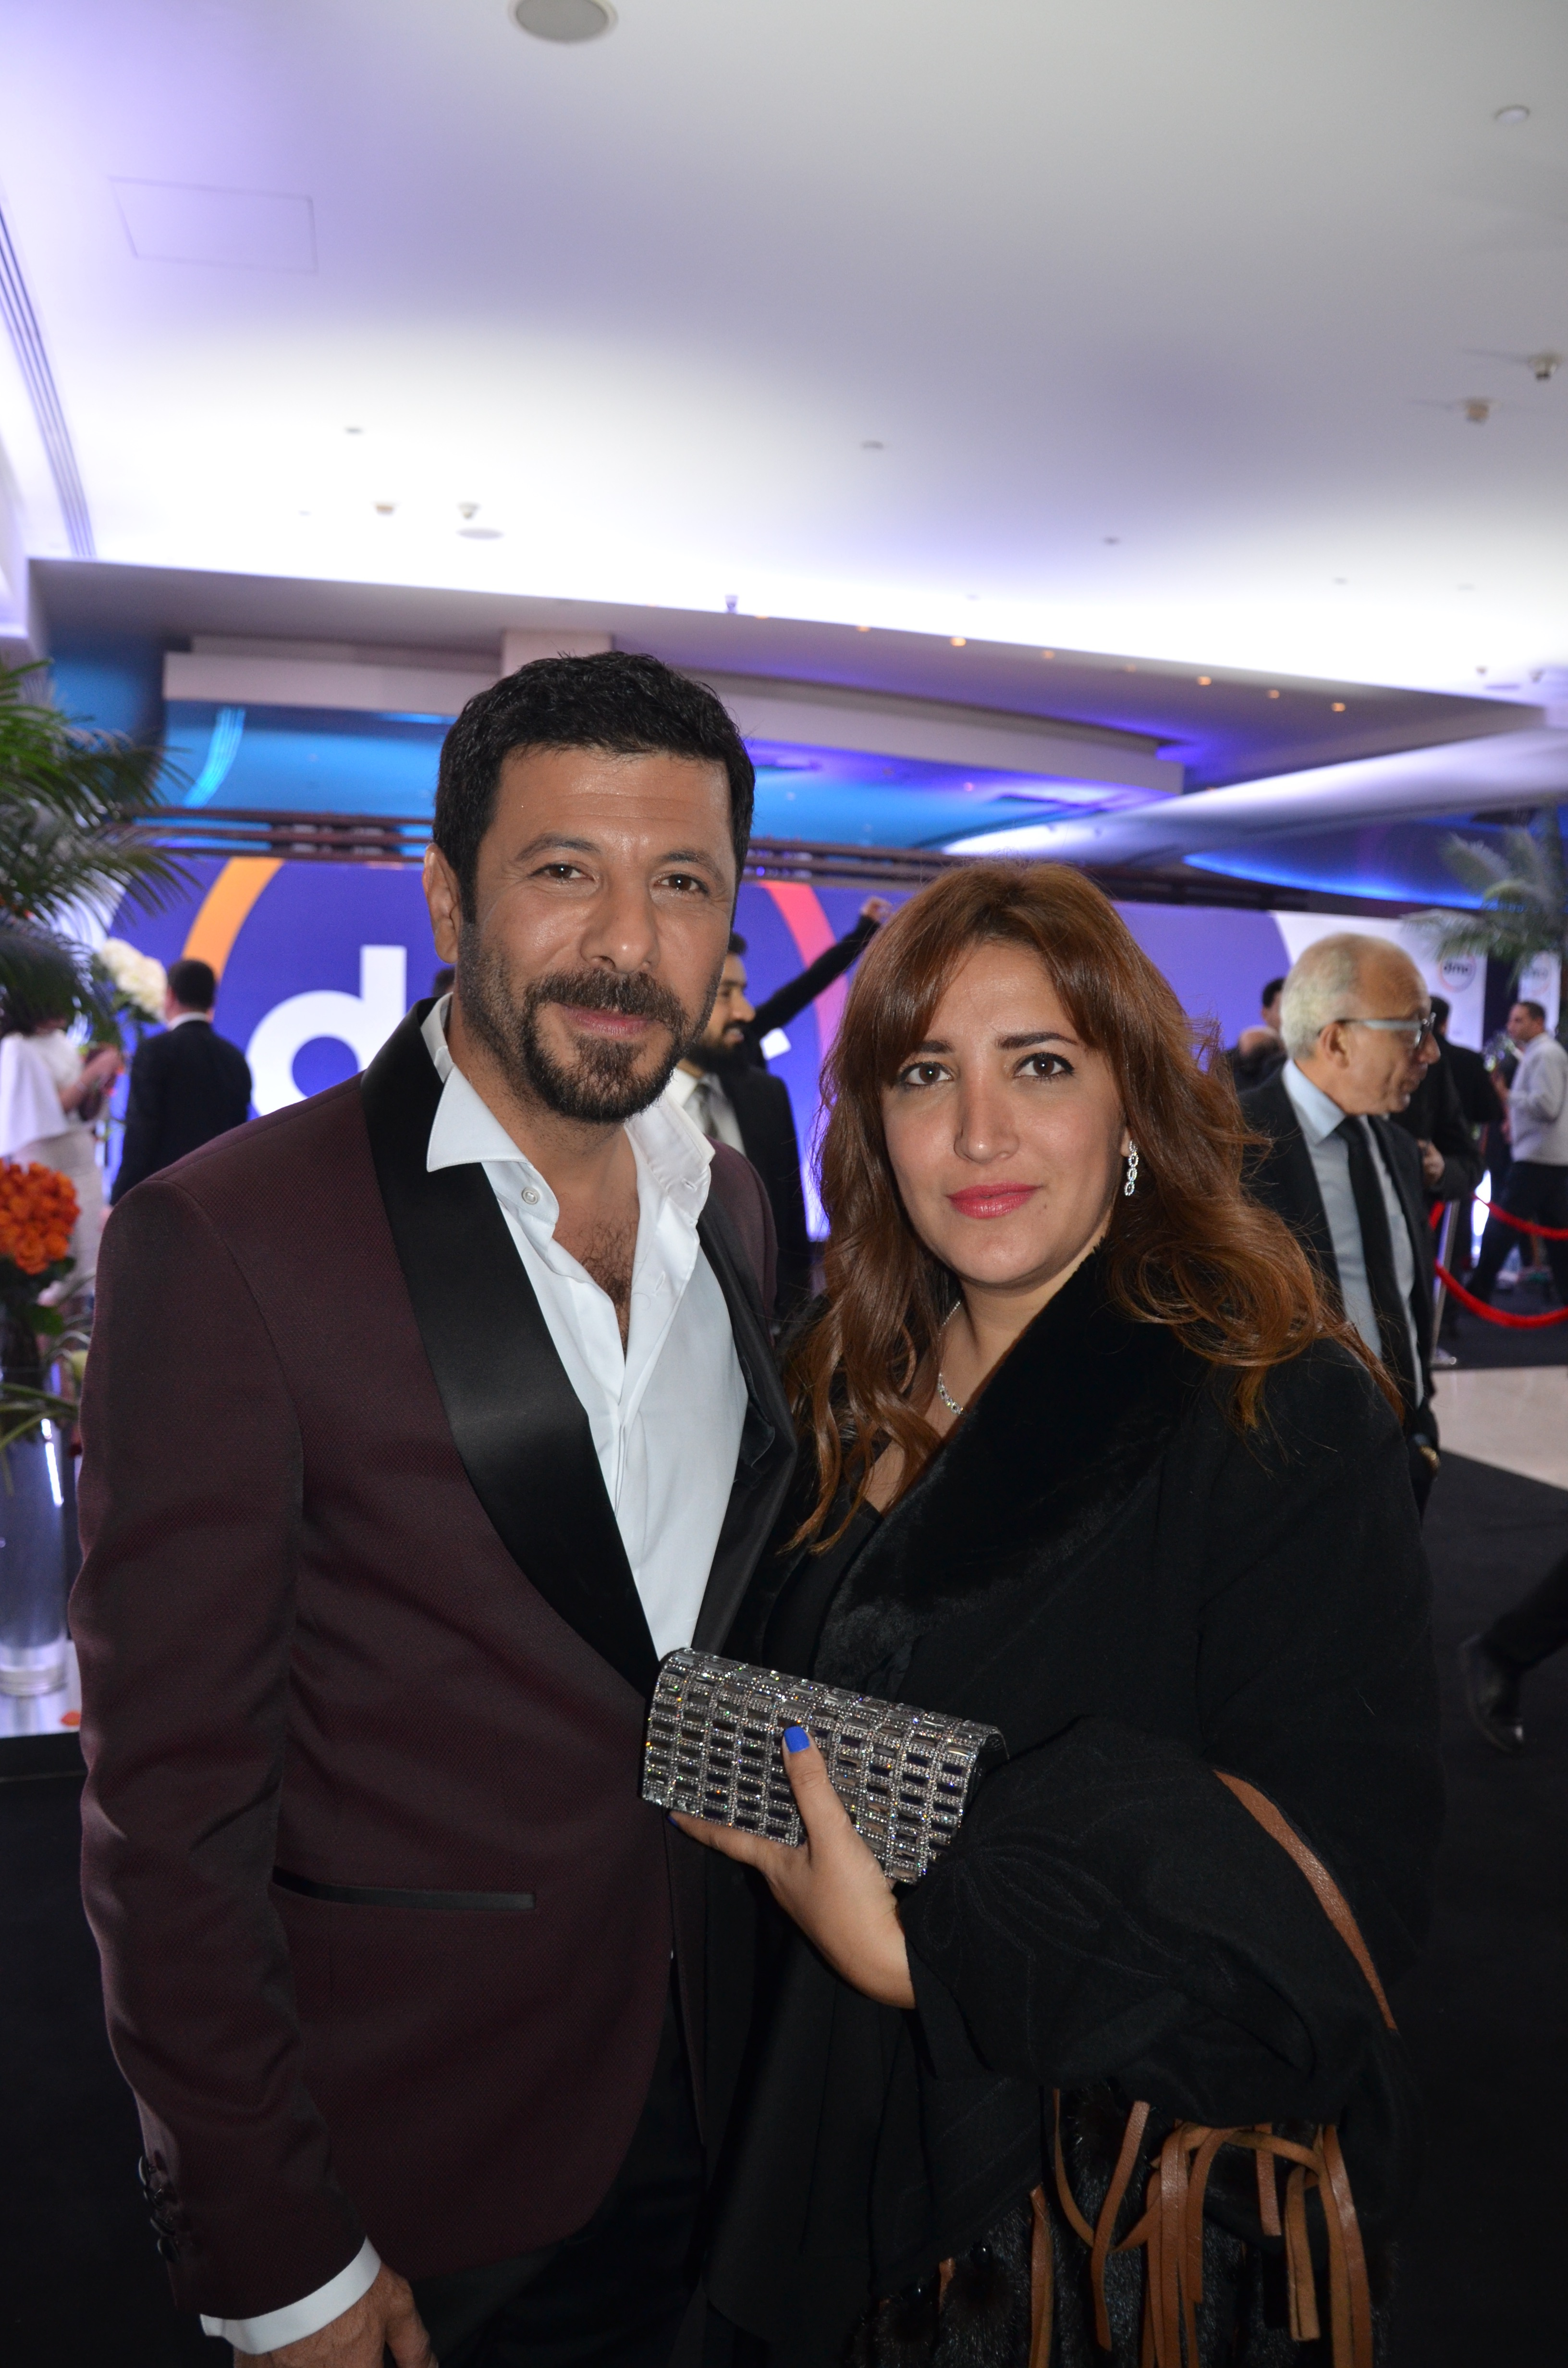 Eyad Nassar and his wife